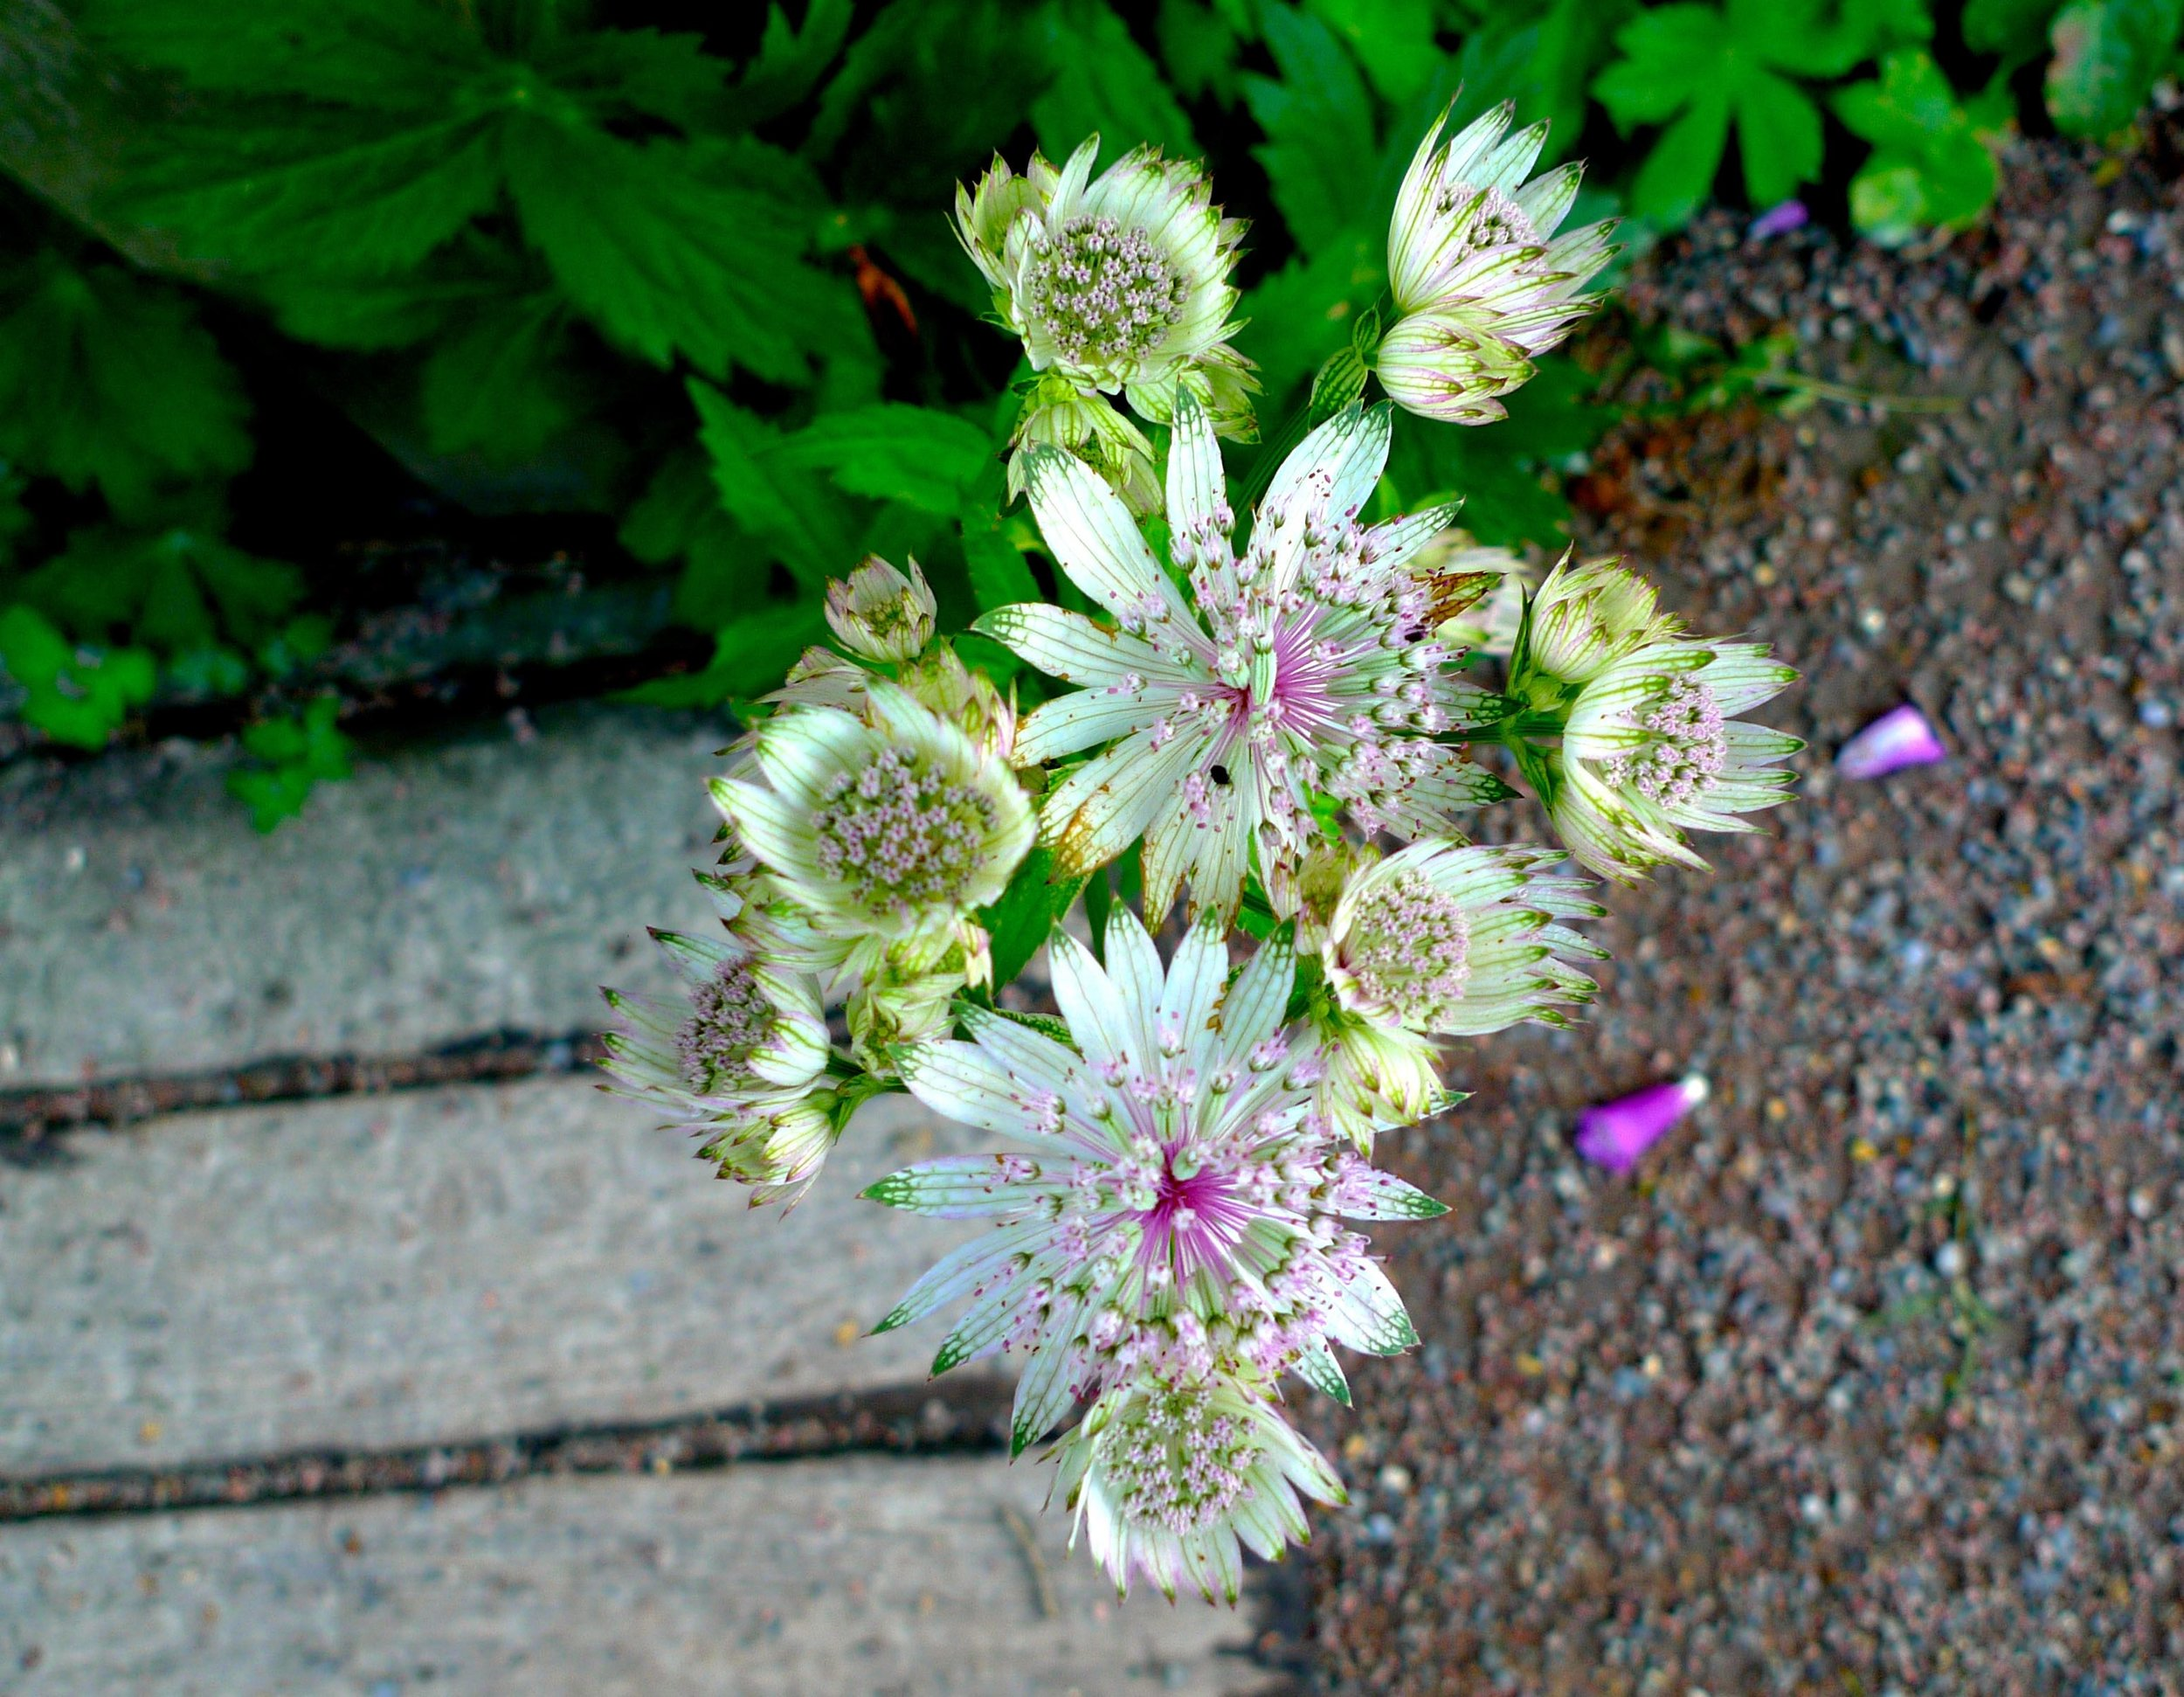 Looking down on the delicately pretty astrantia